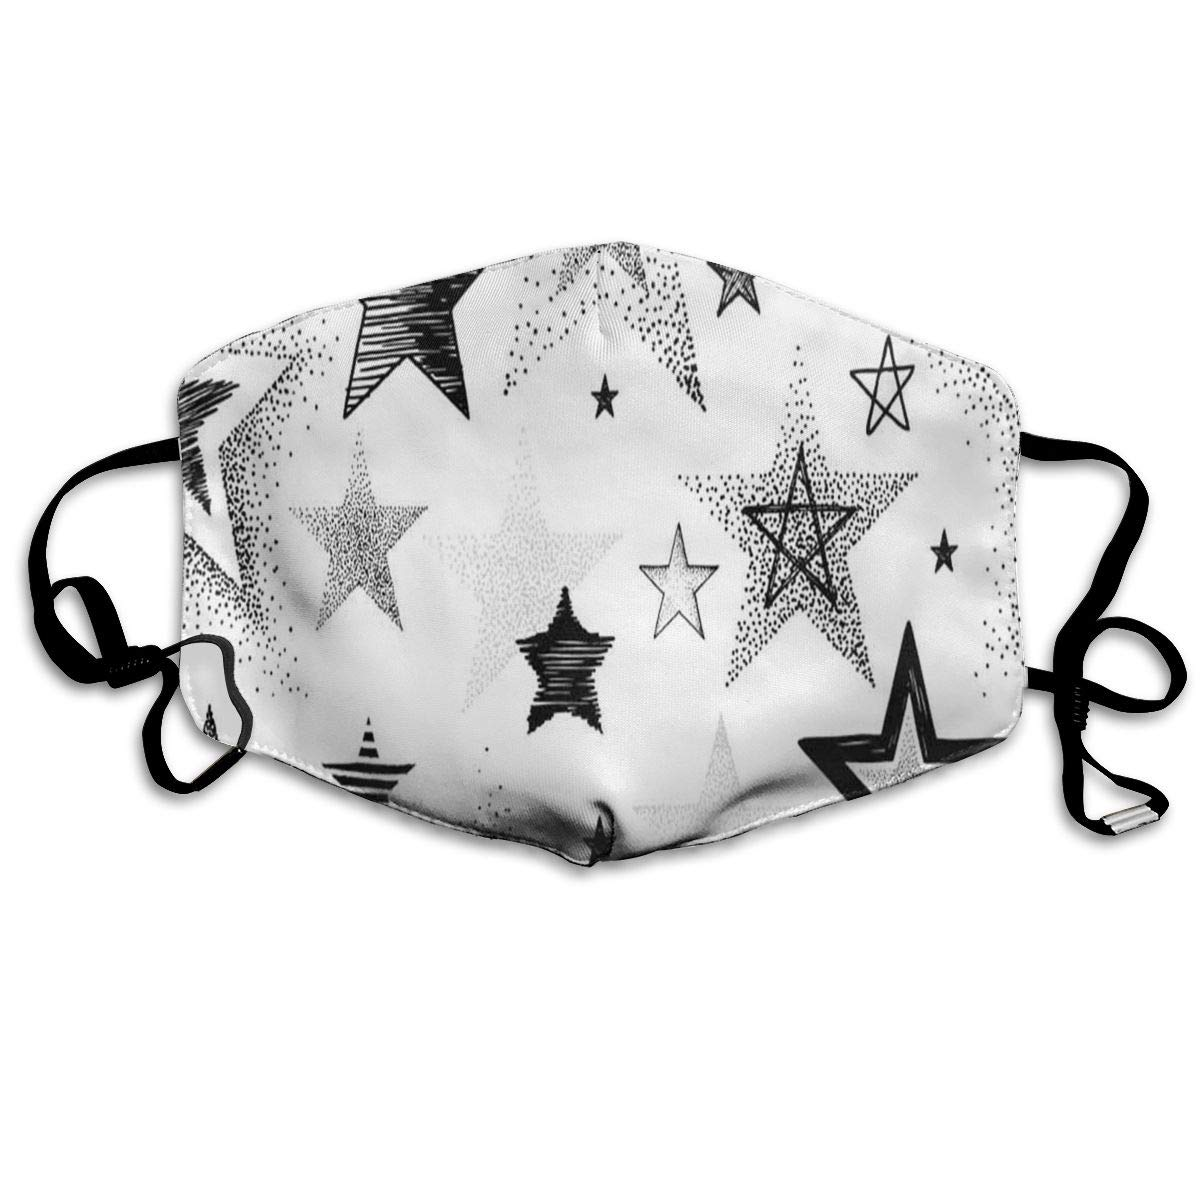 Customized Mask Reusable Anti Dust Face Mouth Cover Hand-Drawn Star Abstraction Mask Warm Windproof